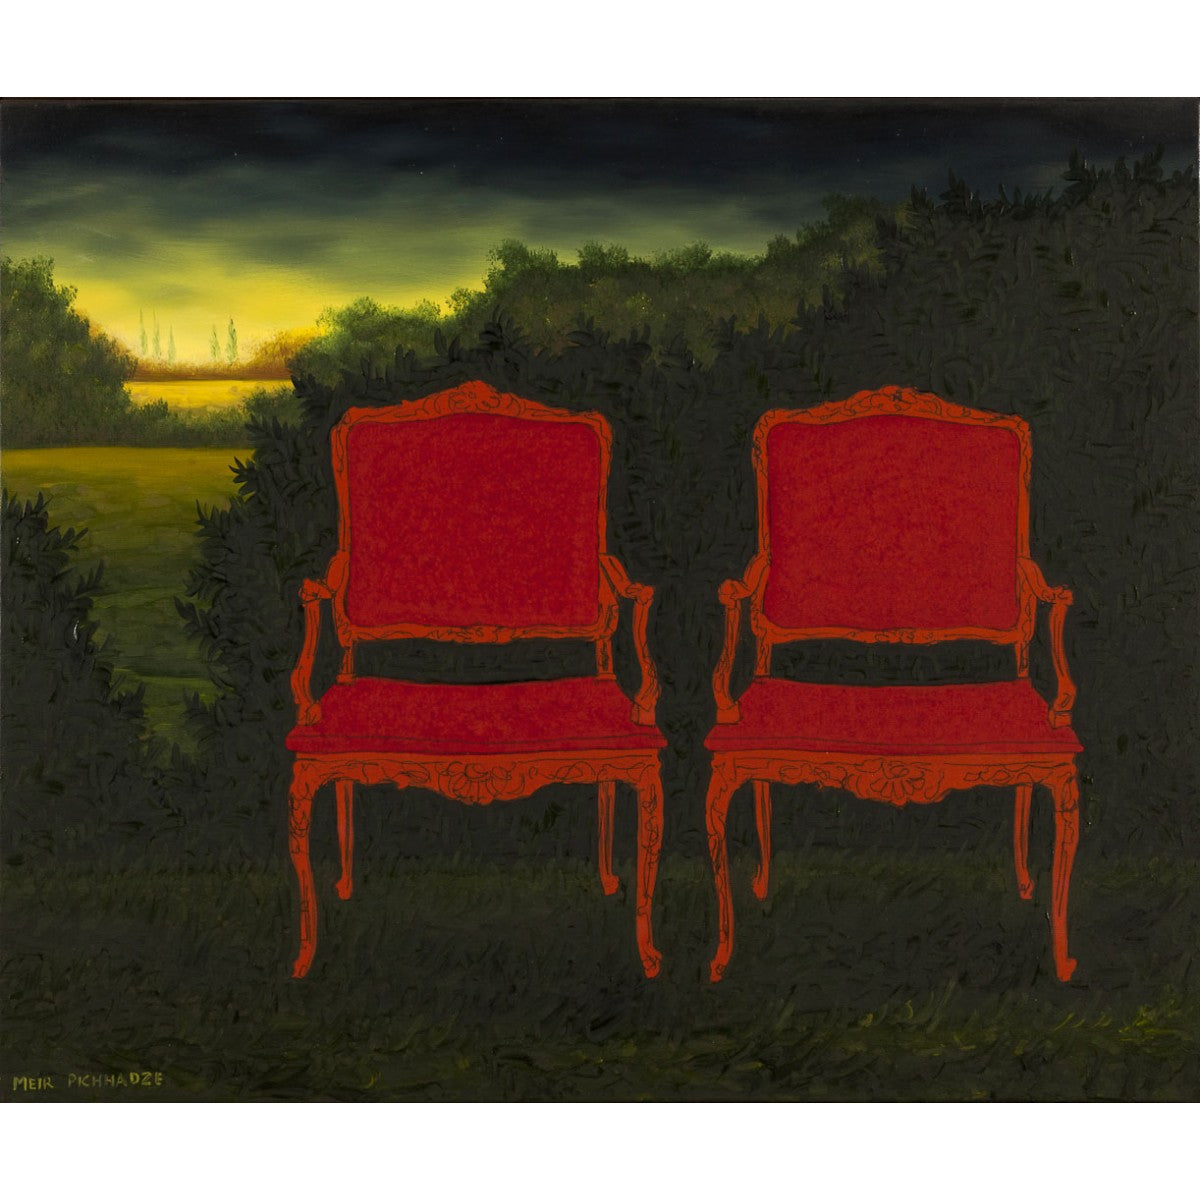 Two Red Chairs by Meir Pichhadze